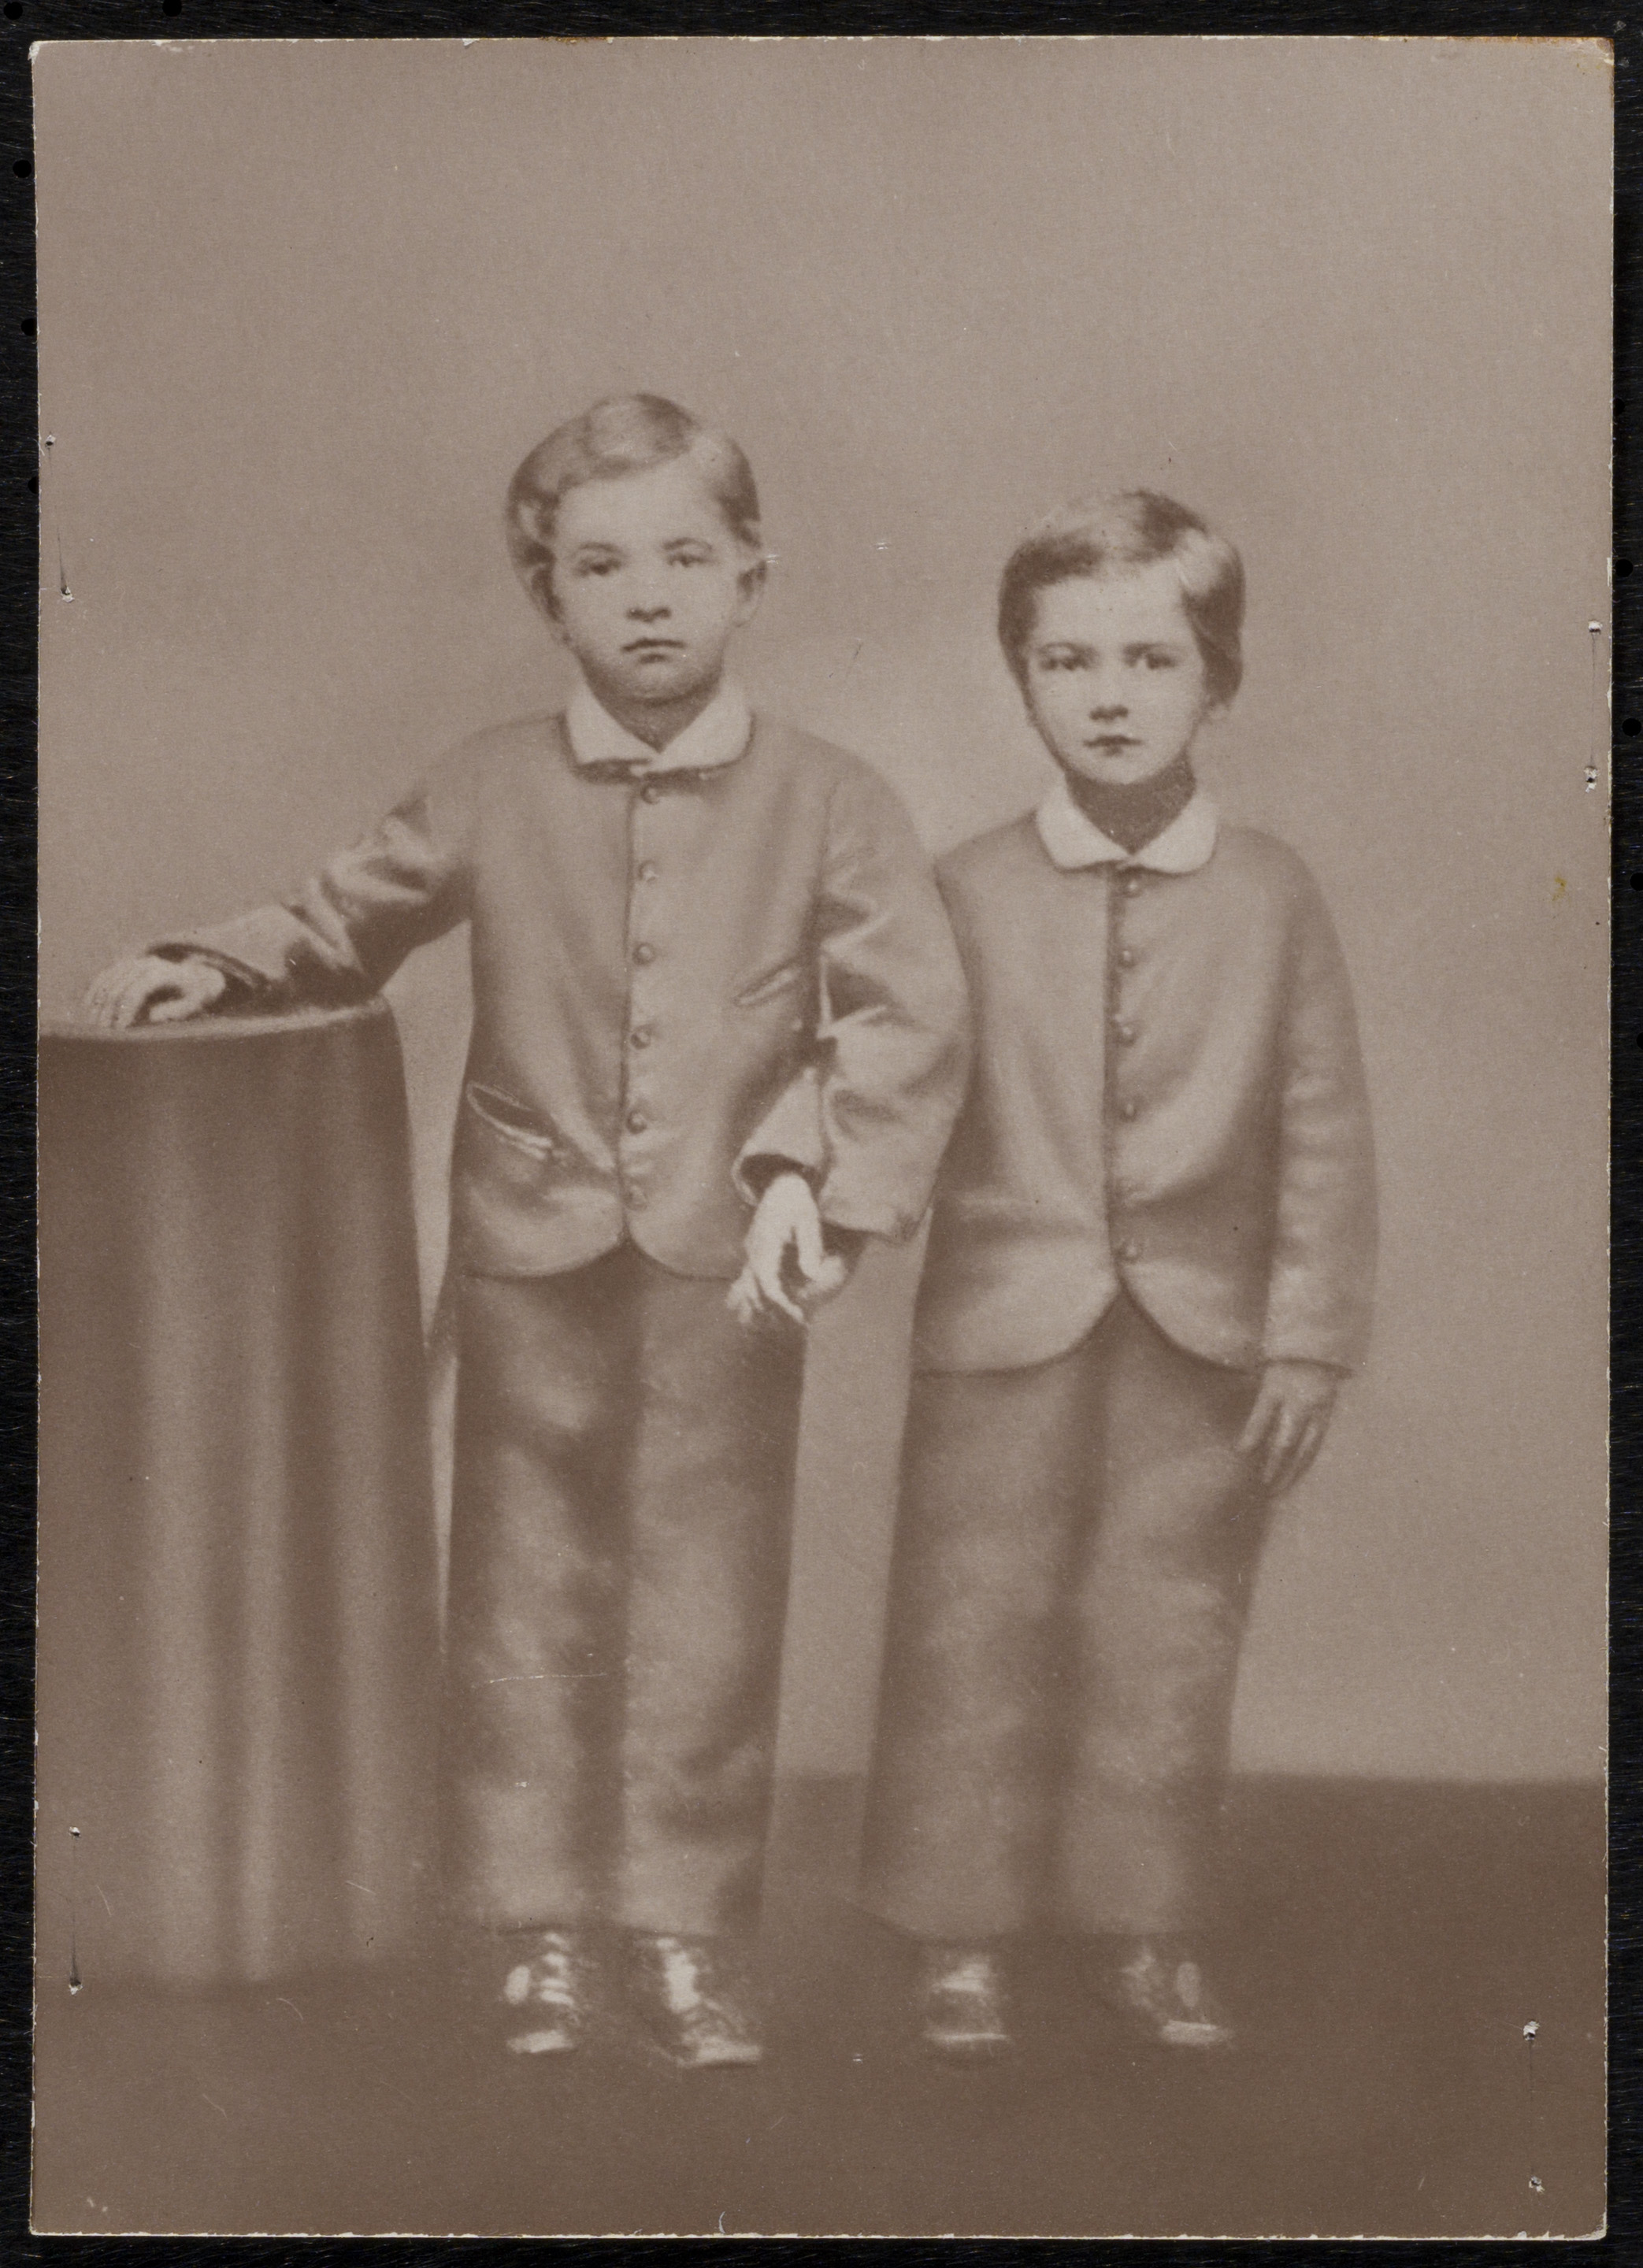 Charles Chesnutt and his brother